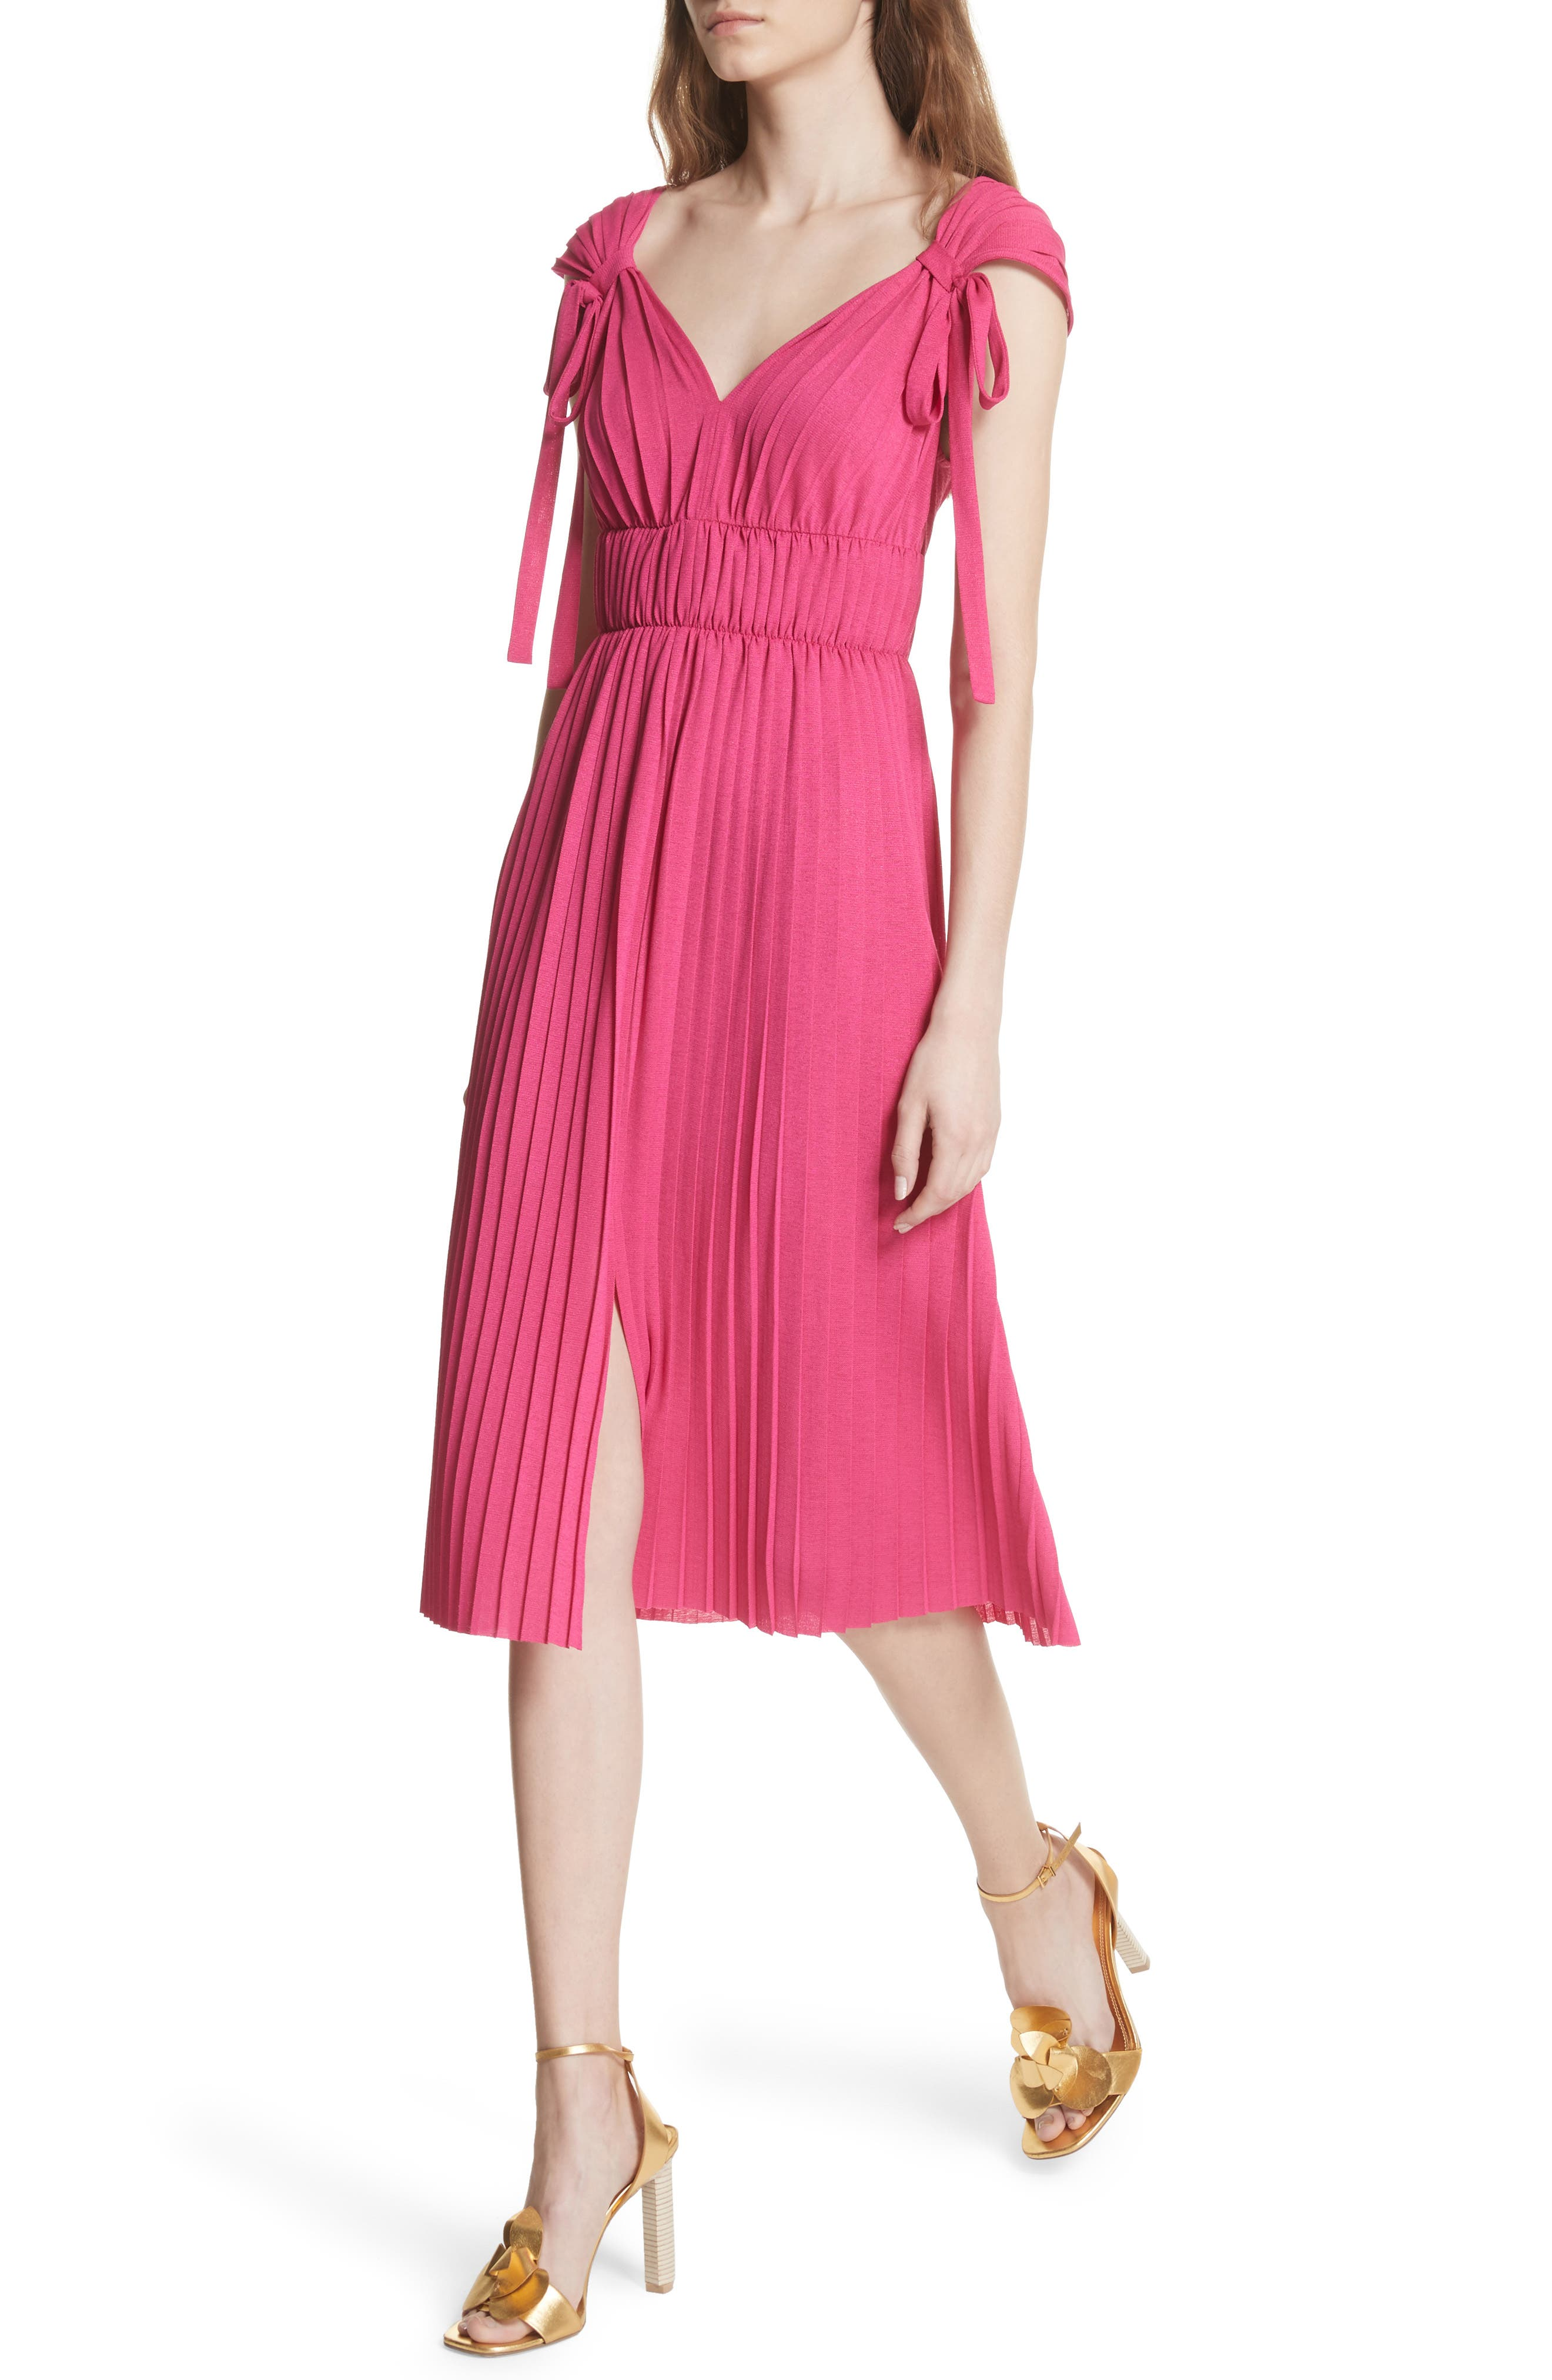 TRACY REESE,                             Grecian Pleat Dress,                             Alternate thumbnail 4, color,                             664